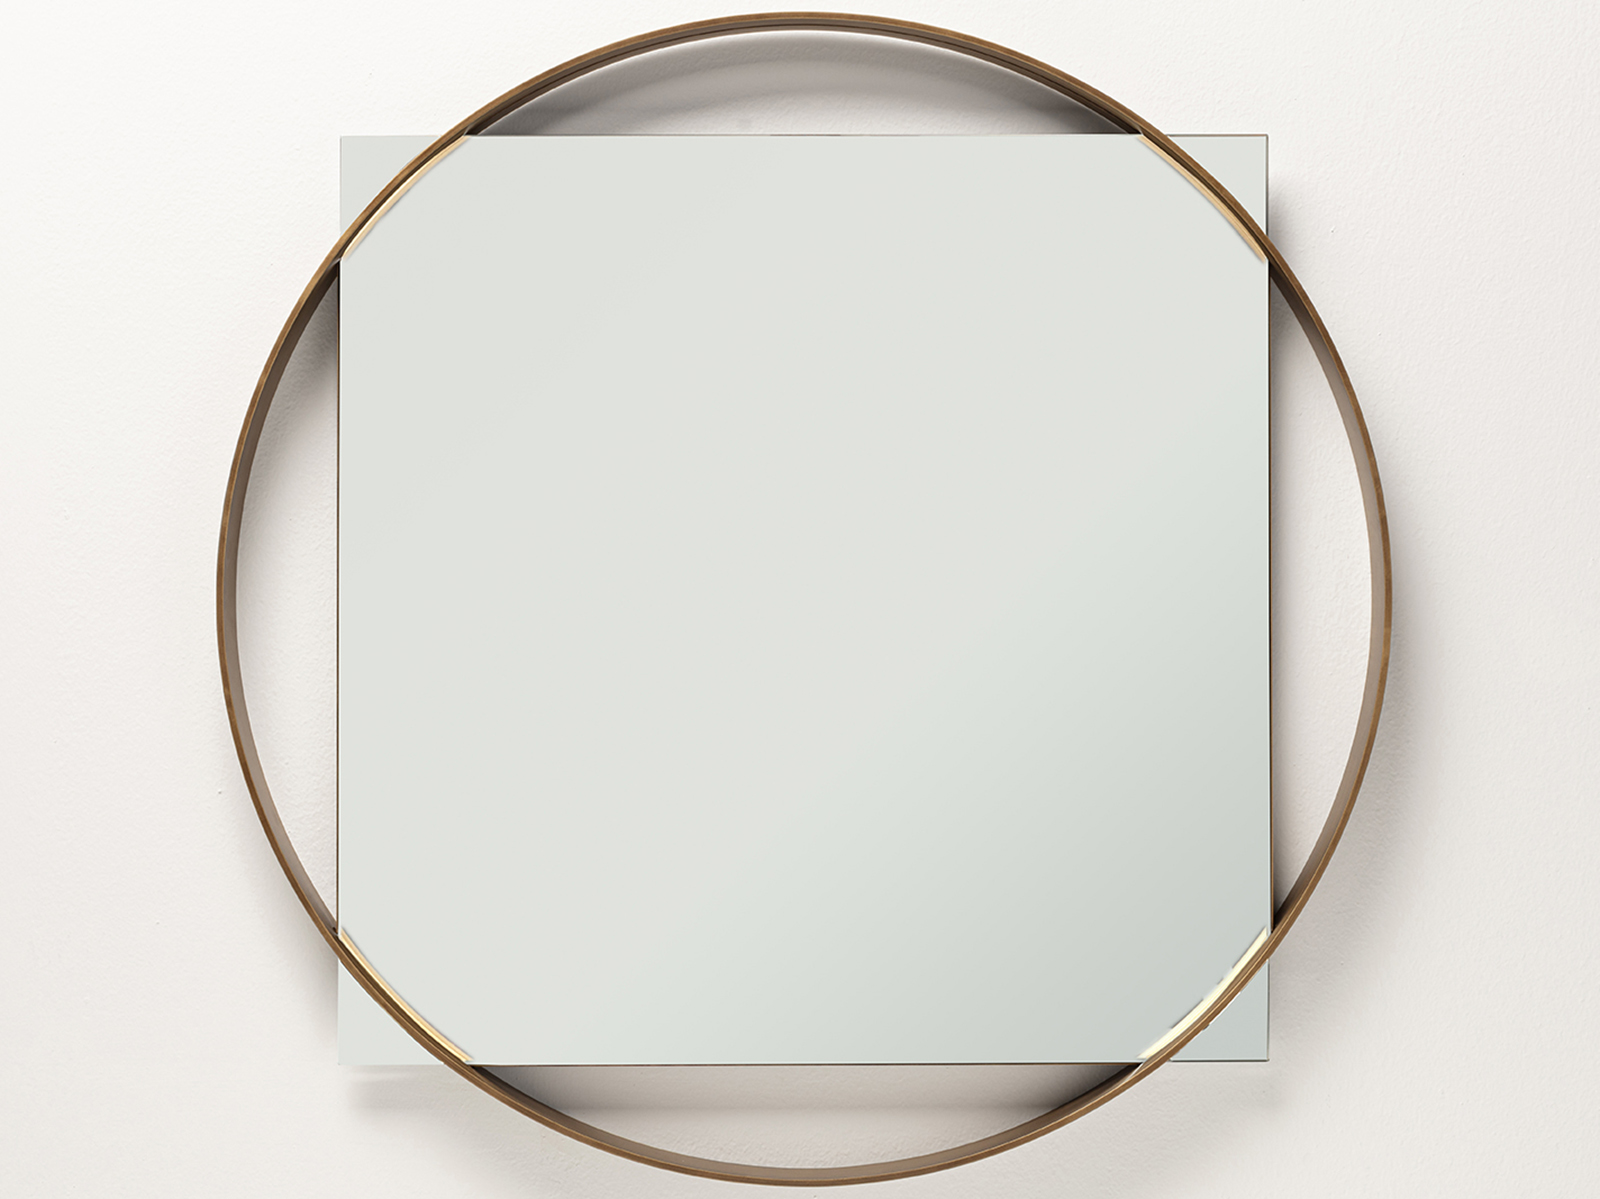 A round gold frame with a square mirror contained inside